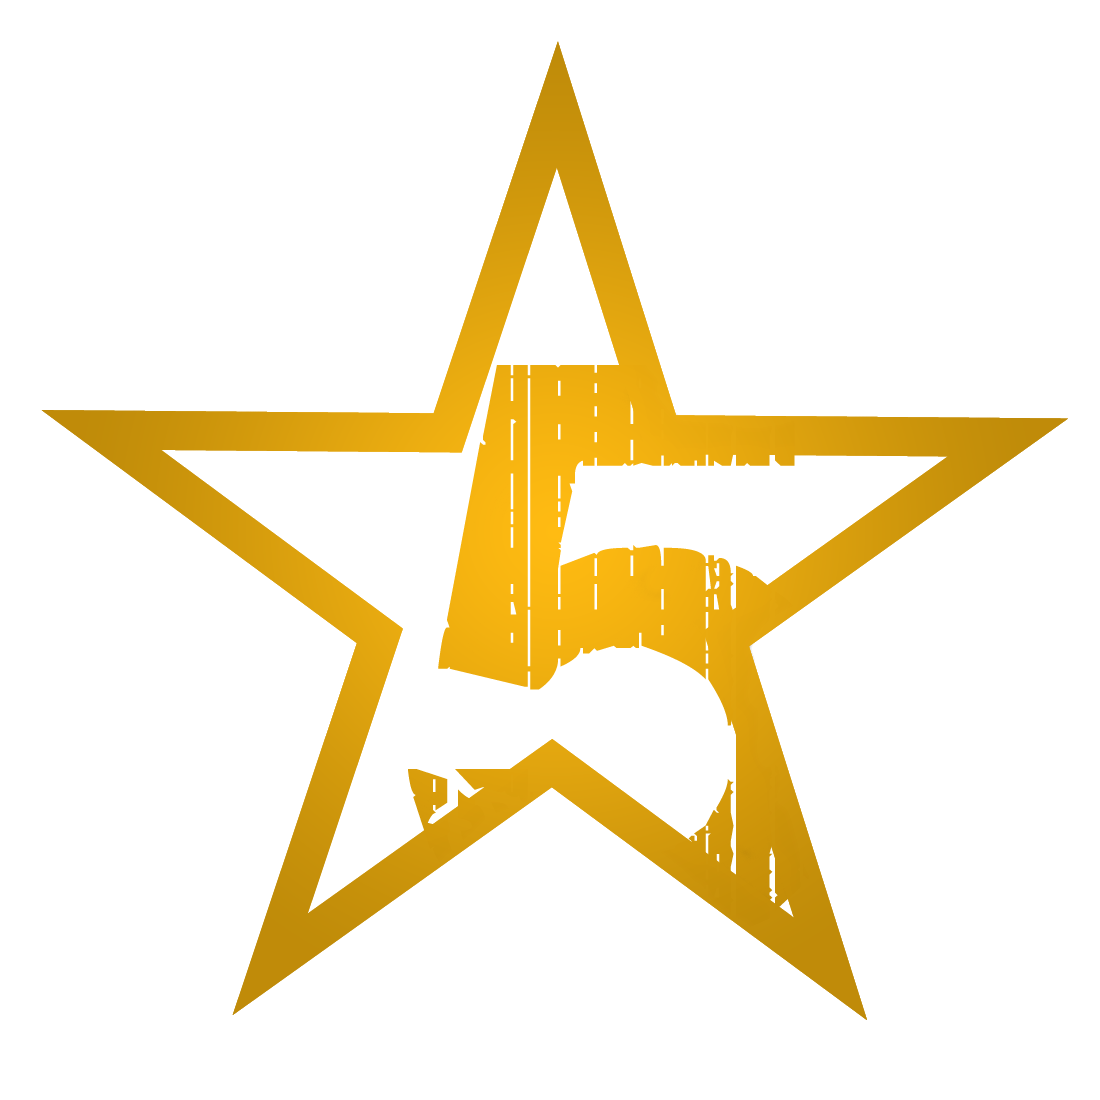 Vector 5 stars. Free star images download